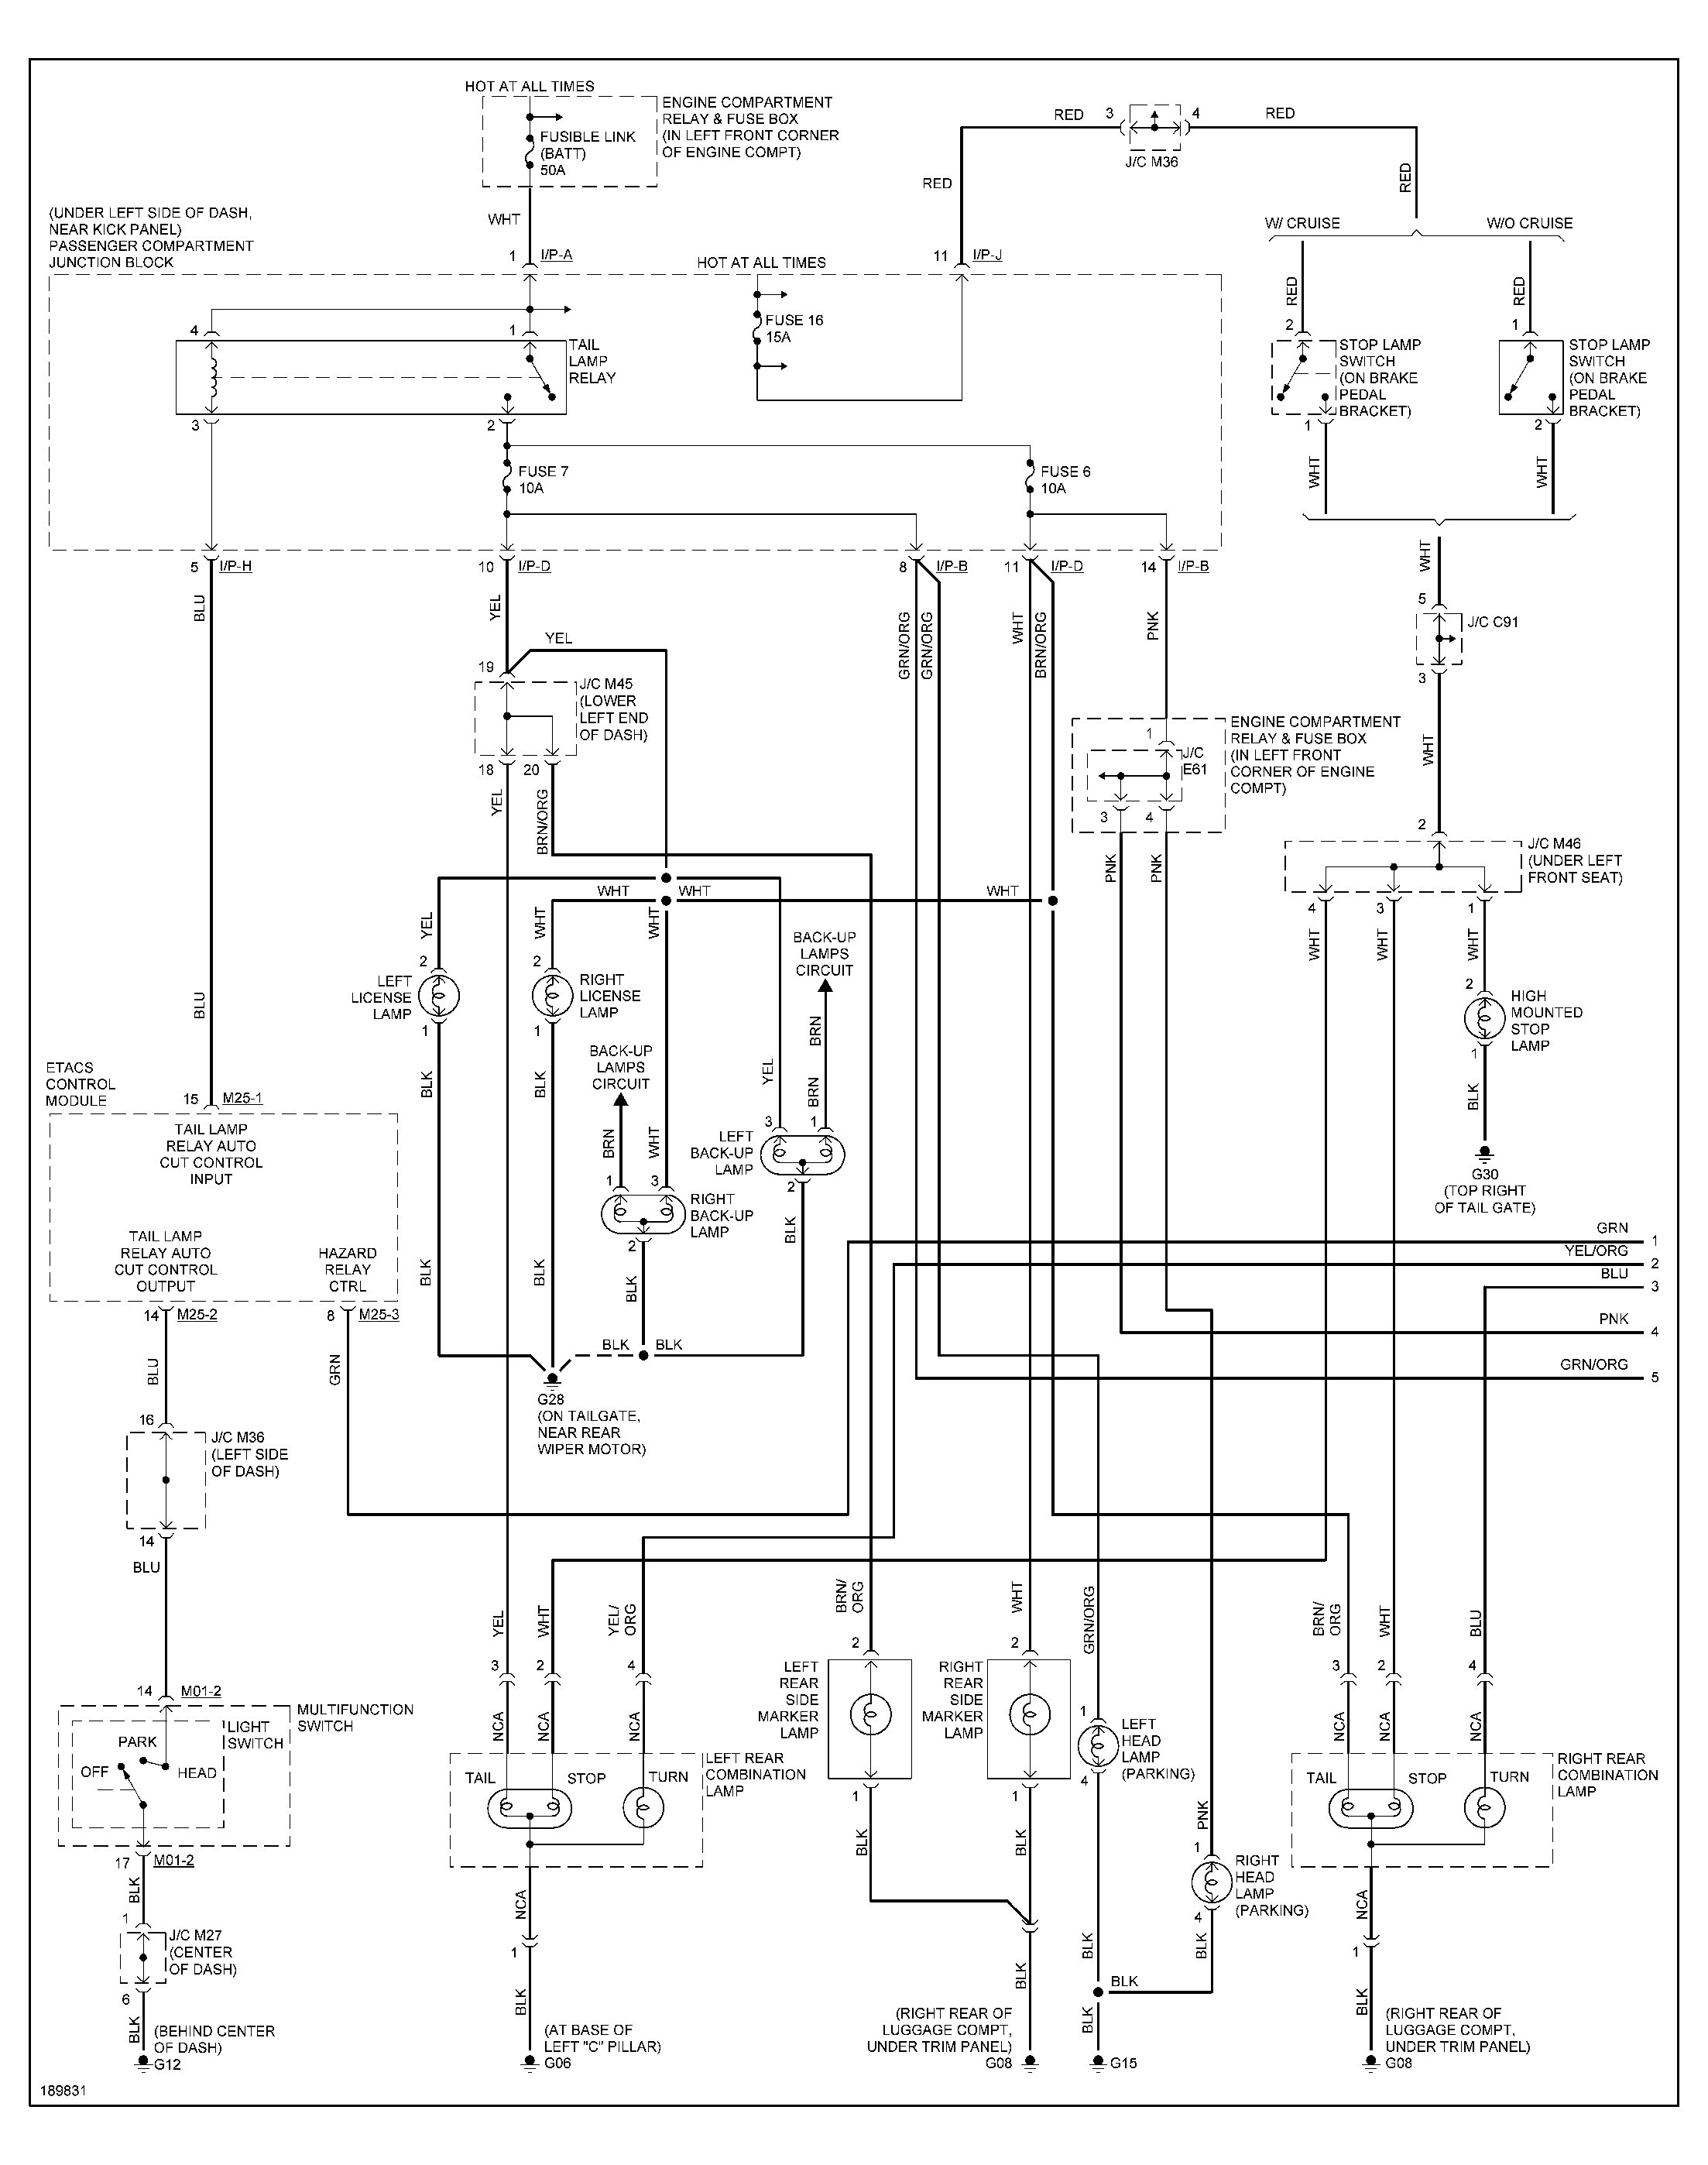 2004 chevy avalanche parts diagram